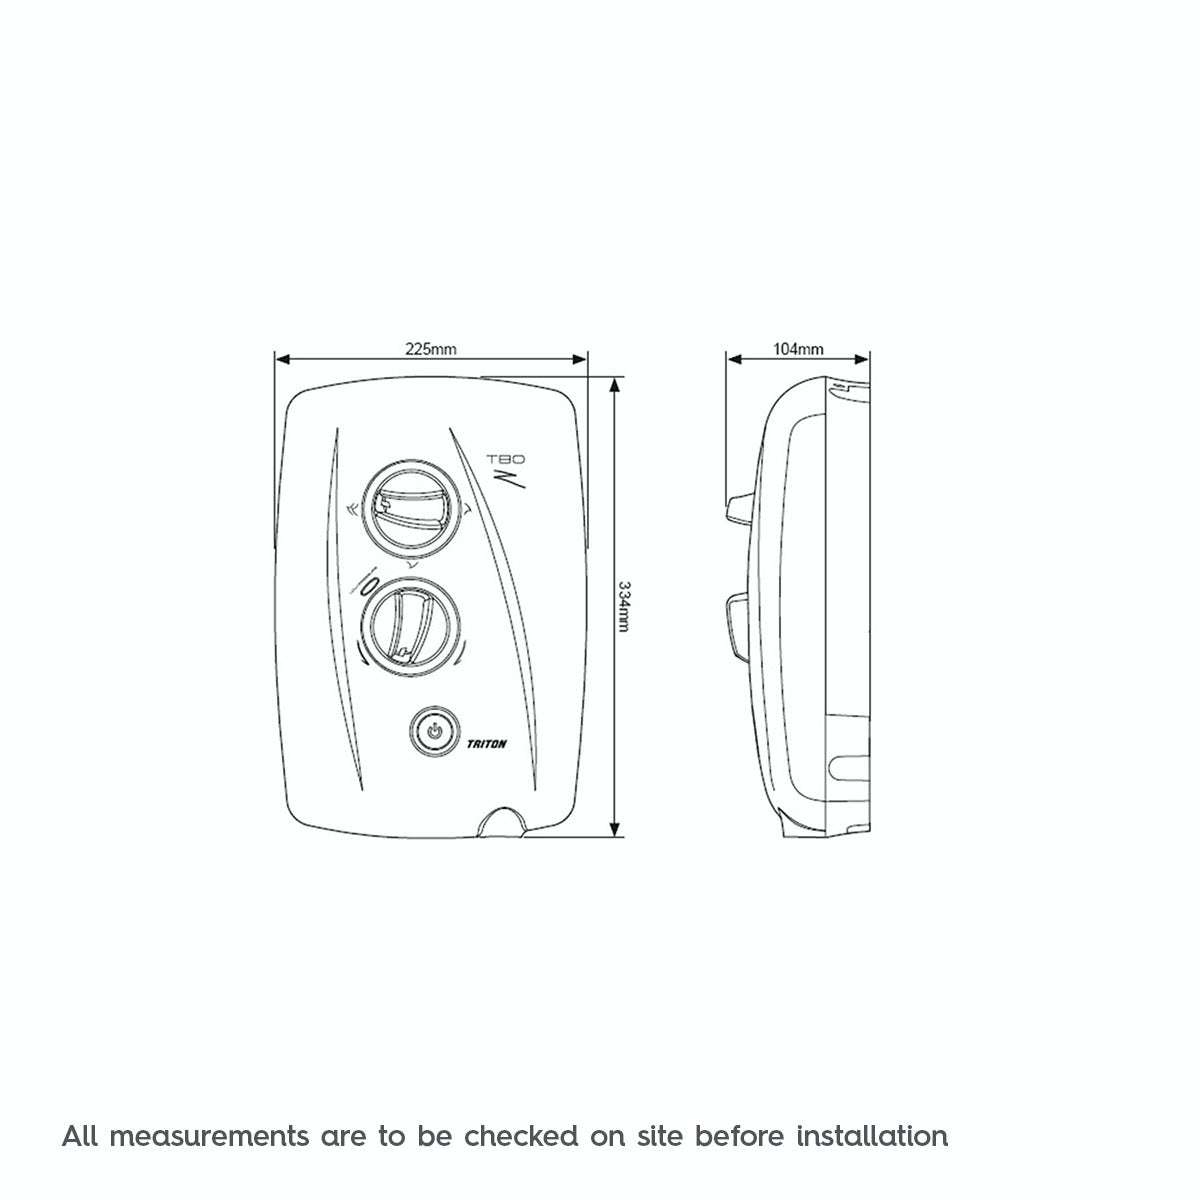 Dimensions for Triton T80z fast fit electric shower 10.5Kw